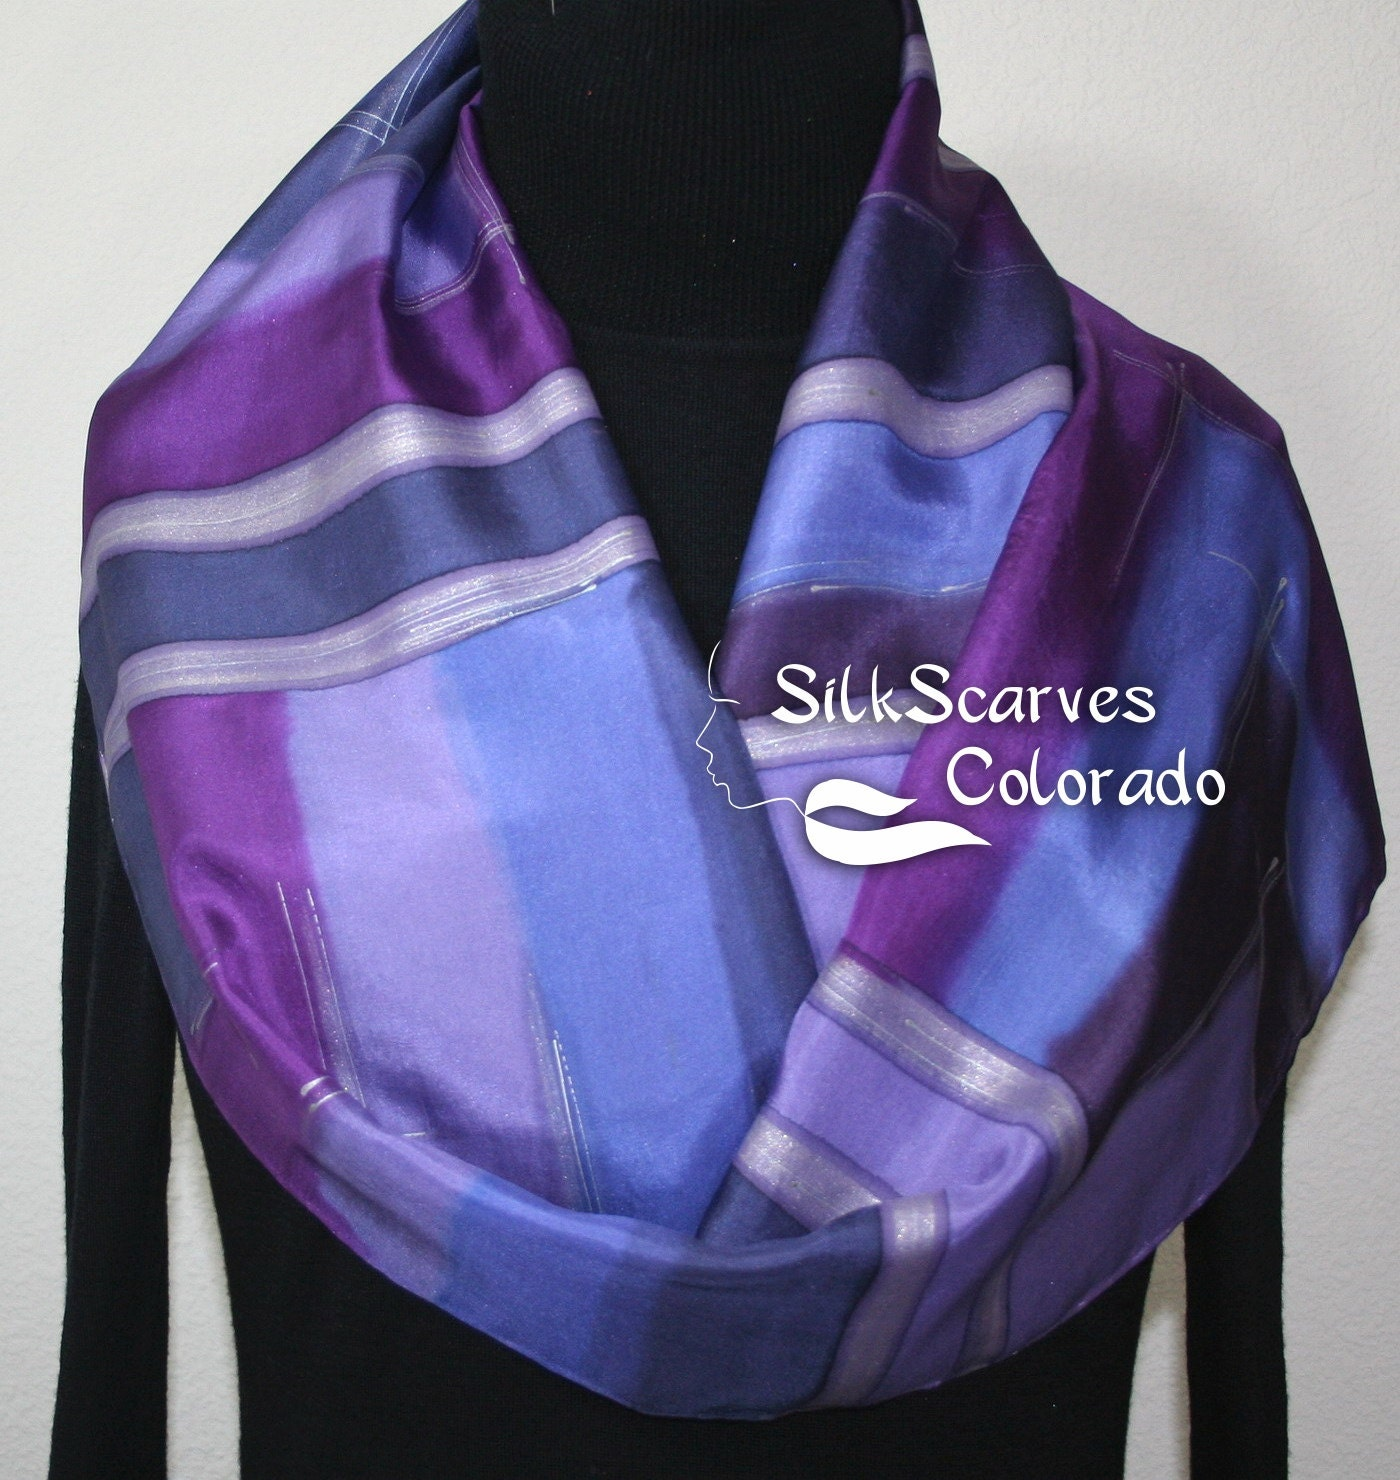 Silk Scarves We offer a wide selection of % silk scarves. Browse the scarves by using the filters to find the scarves by color, by pattern or by style.